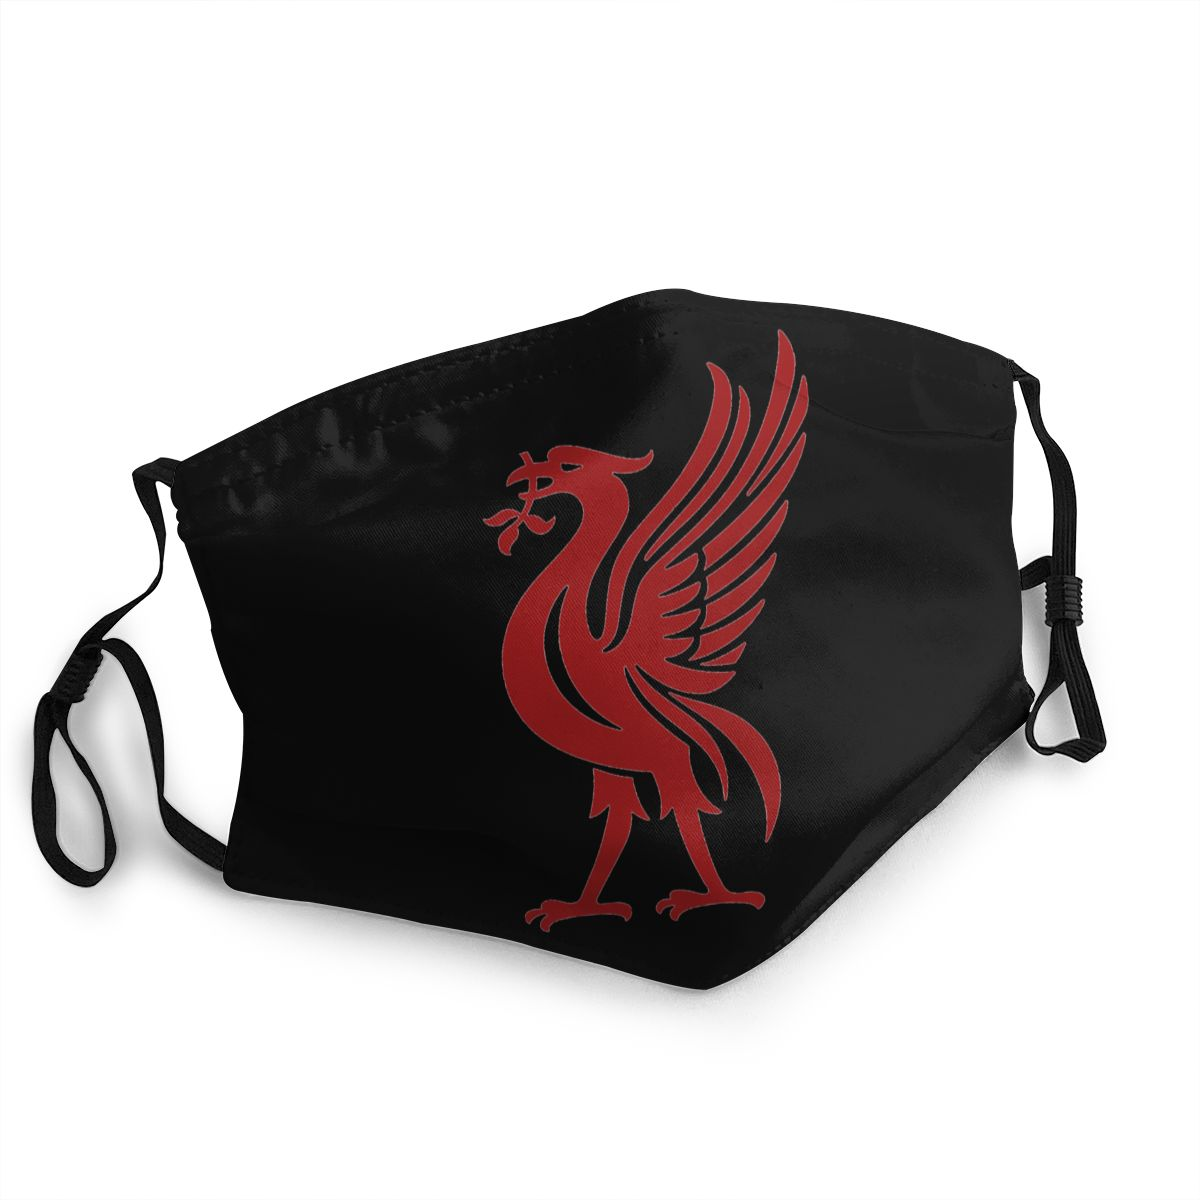 Fashion Face Mask Red Birds Unisex Winter Warm Mouth Mask Anti Dust Liverpool Facial Protective